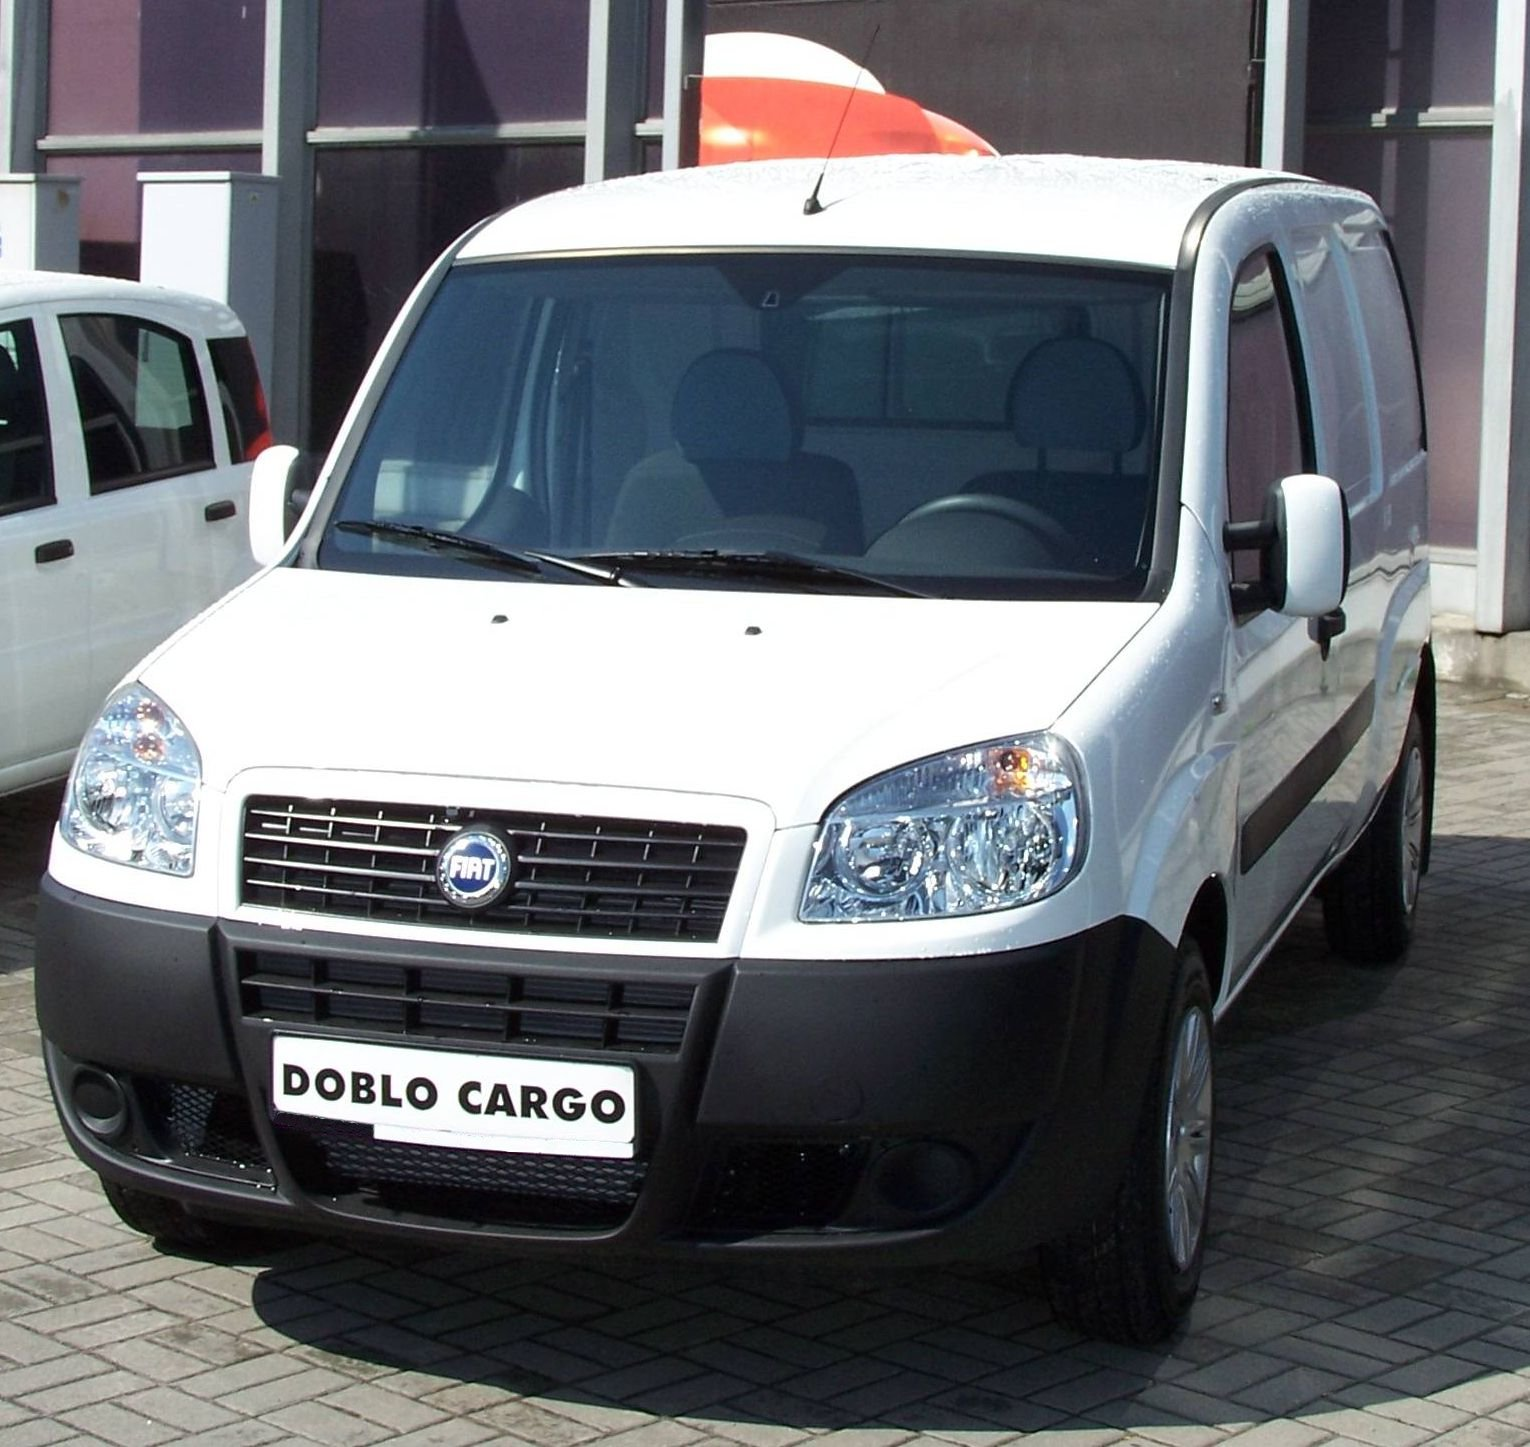 fiat doblo cargo technical details history photos on better parts ltd. Black Bedroom Furniture Sets. Home Design Ideas